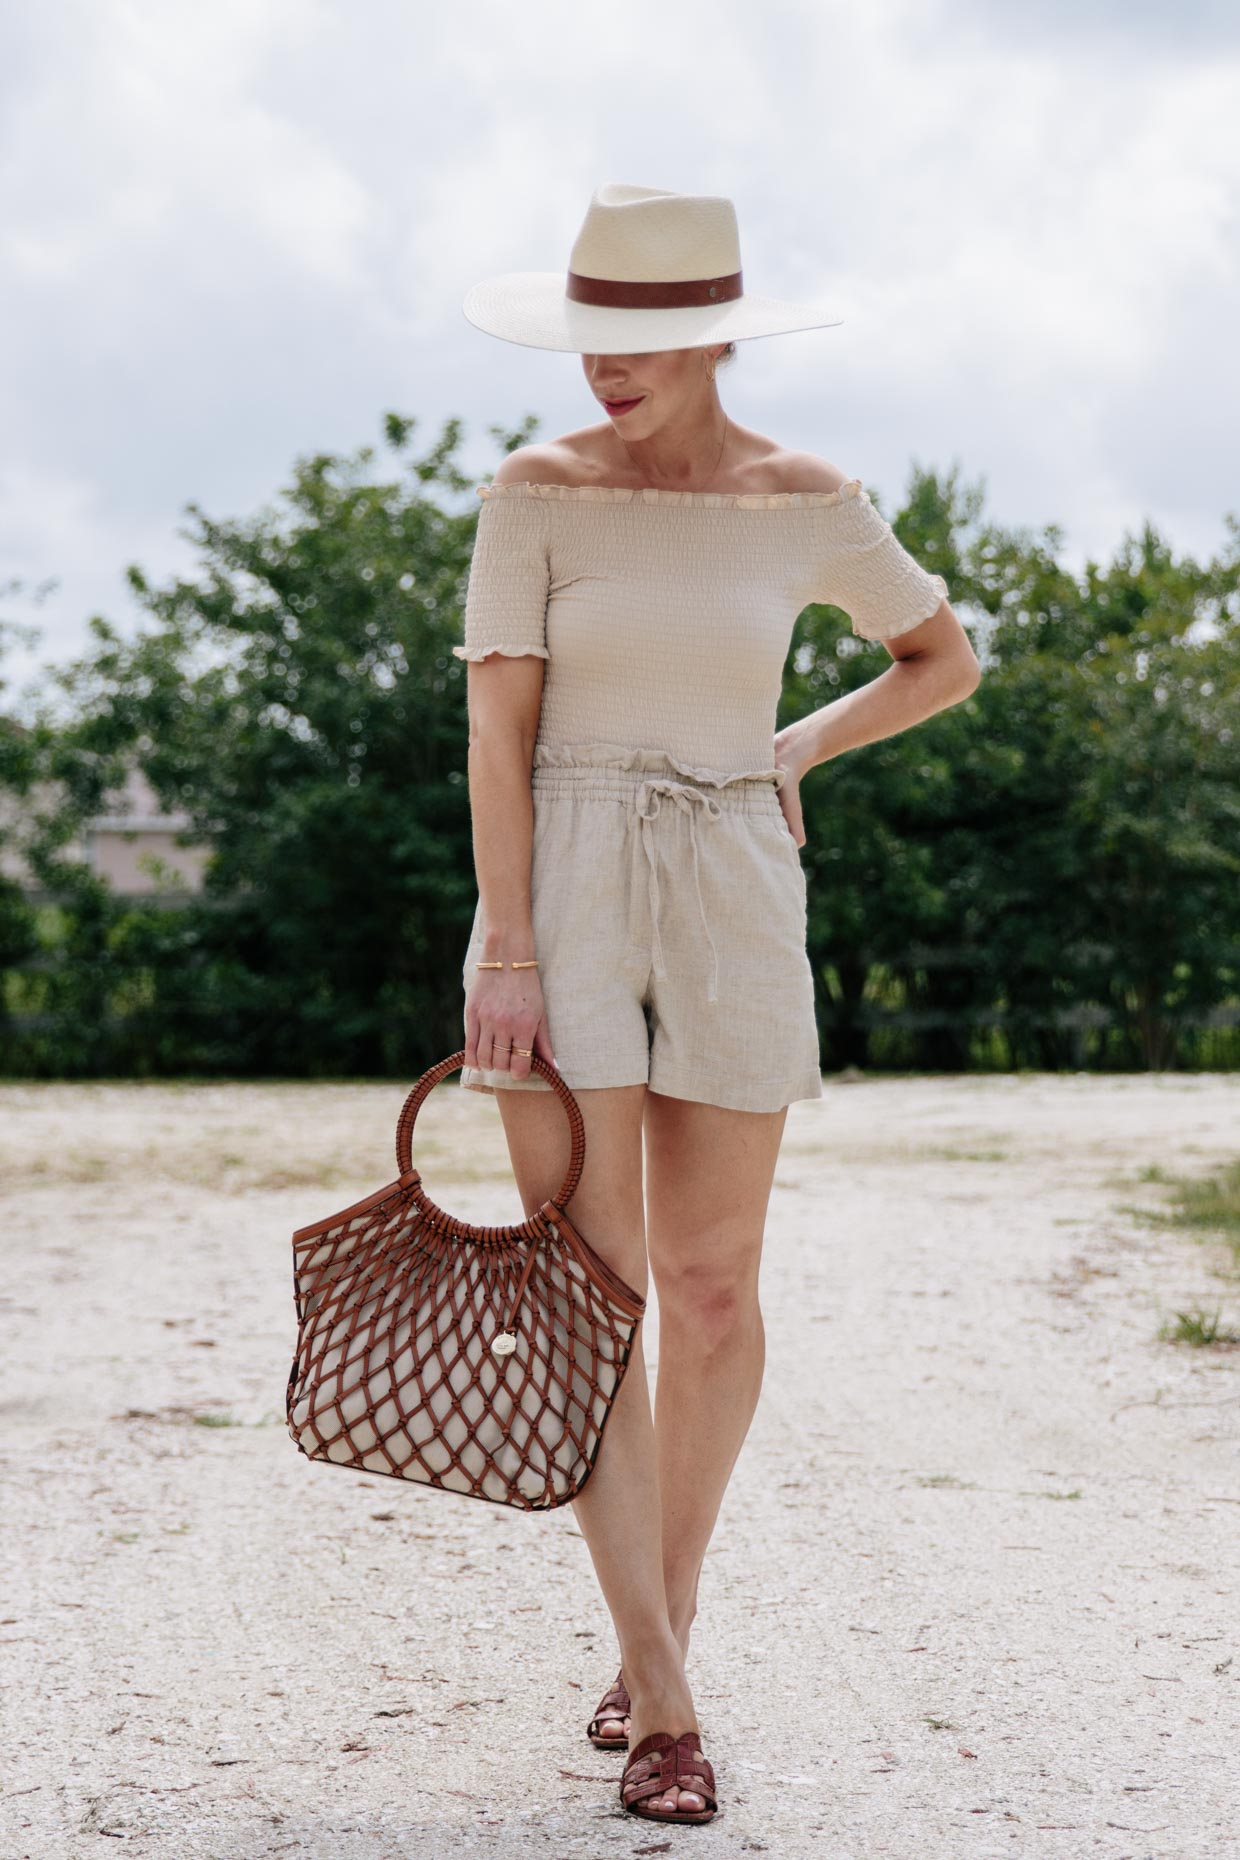 Meagan Brandon fashion blogger of Meagan's Moda wears beige monochrome outfit with off the shoulder top and high waist linen shorts